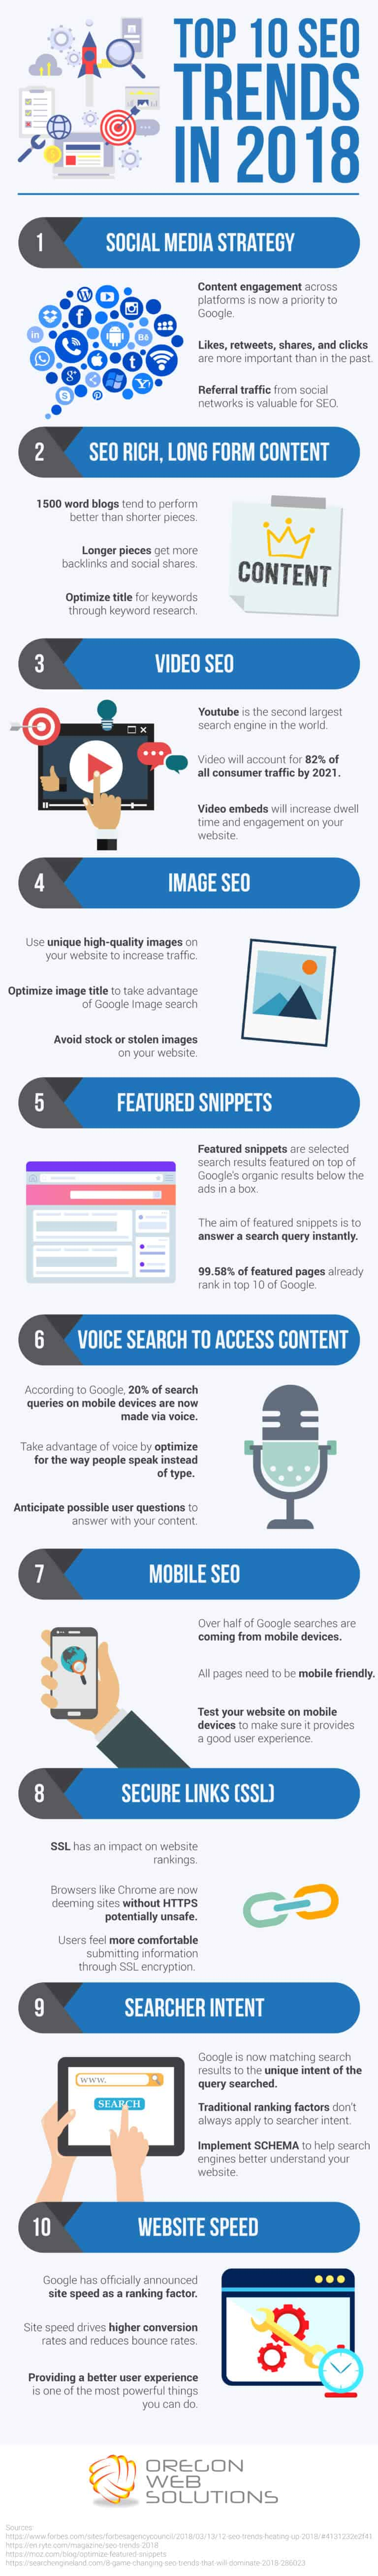 Top 10 Search Engine Optimization